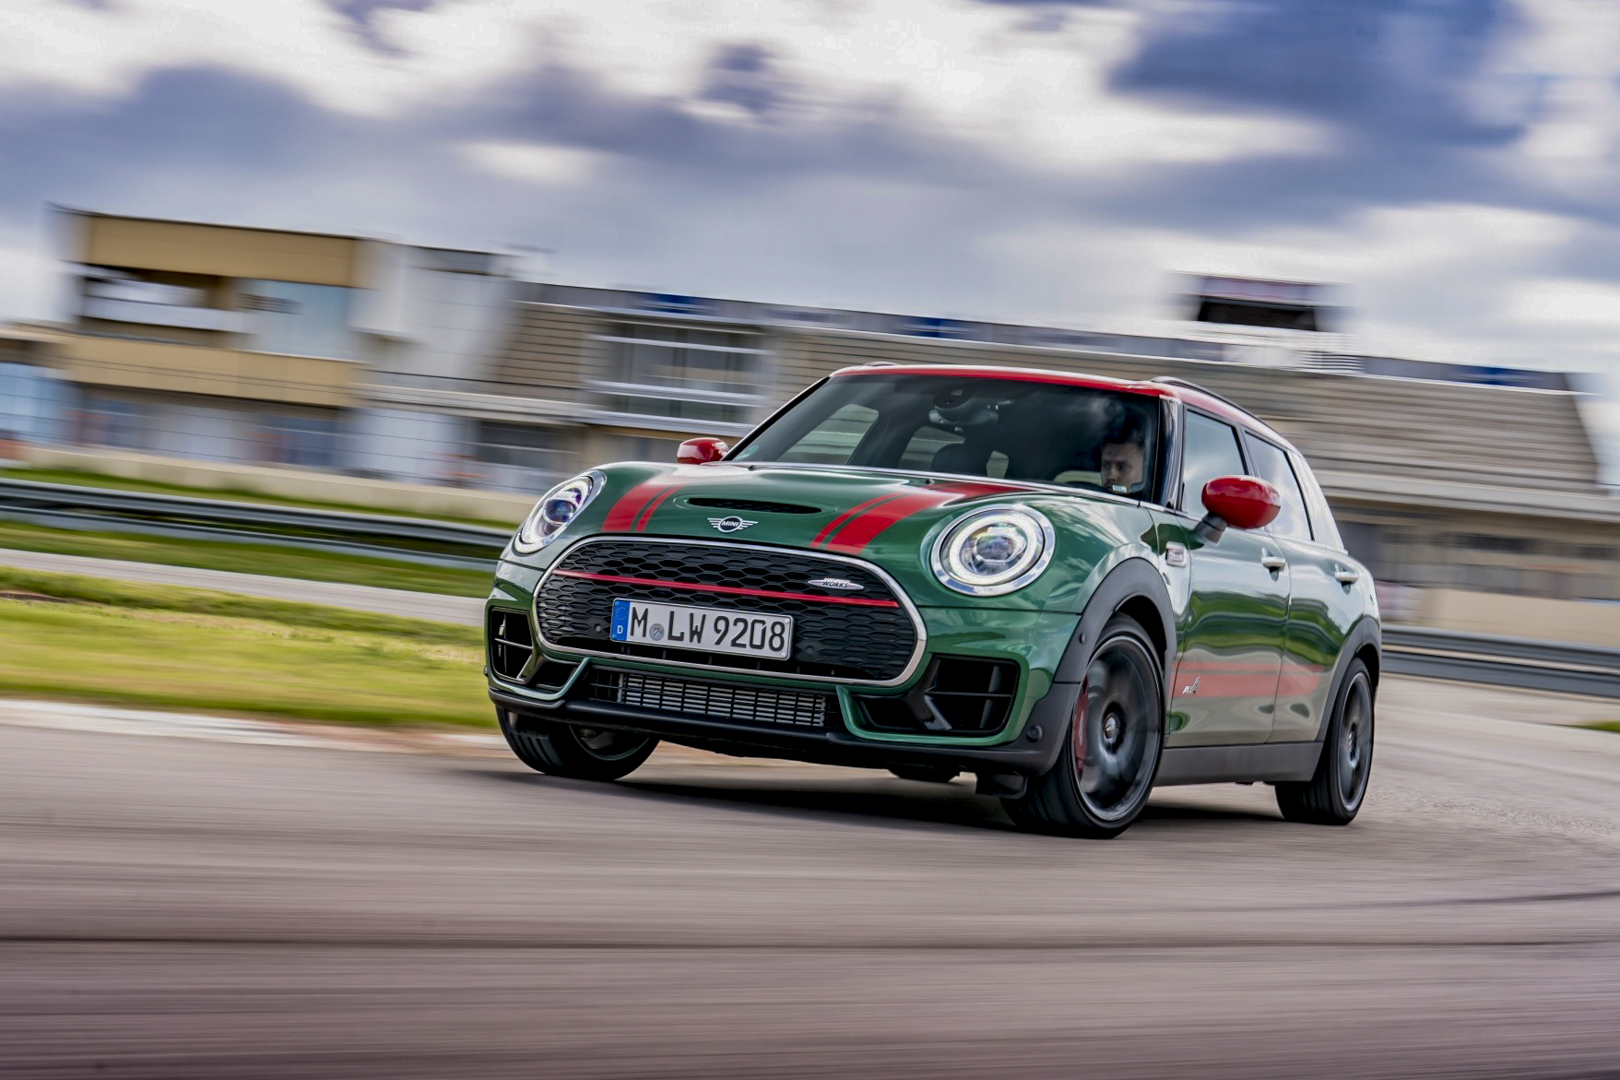 From the Rambla to the race track: with the MINI John Cooper Works Clubman on Mallorca